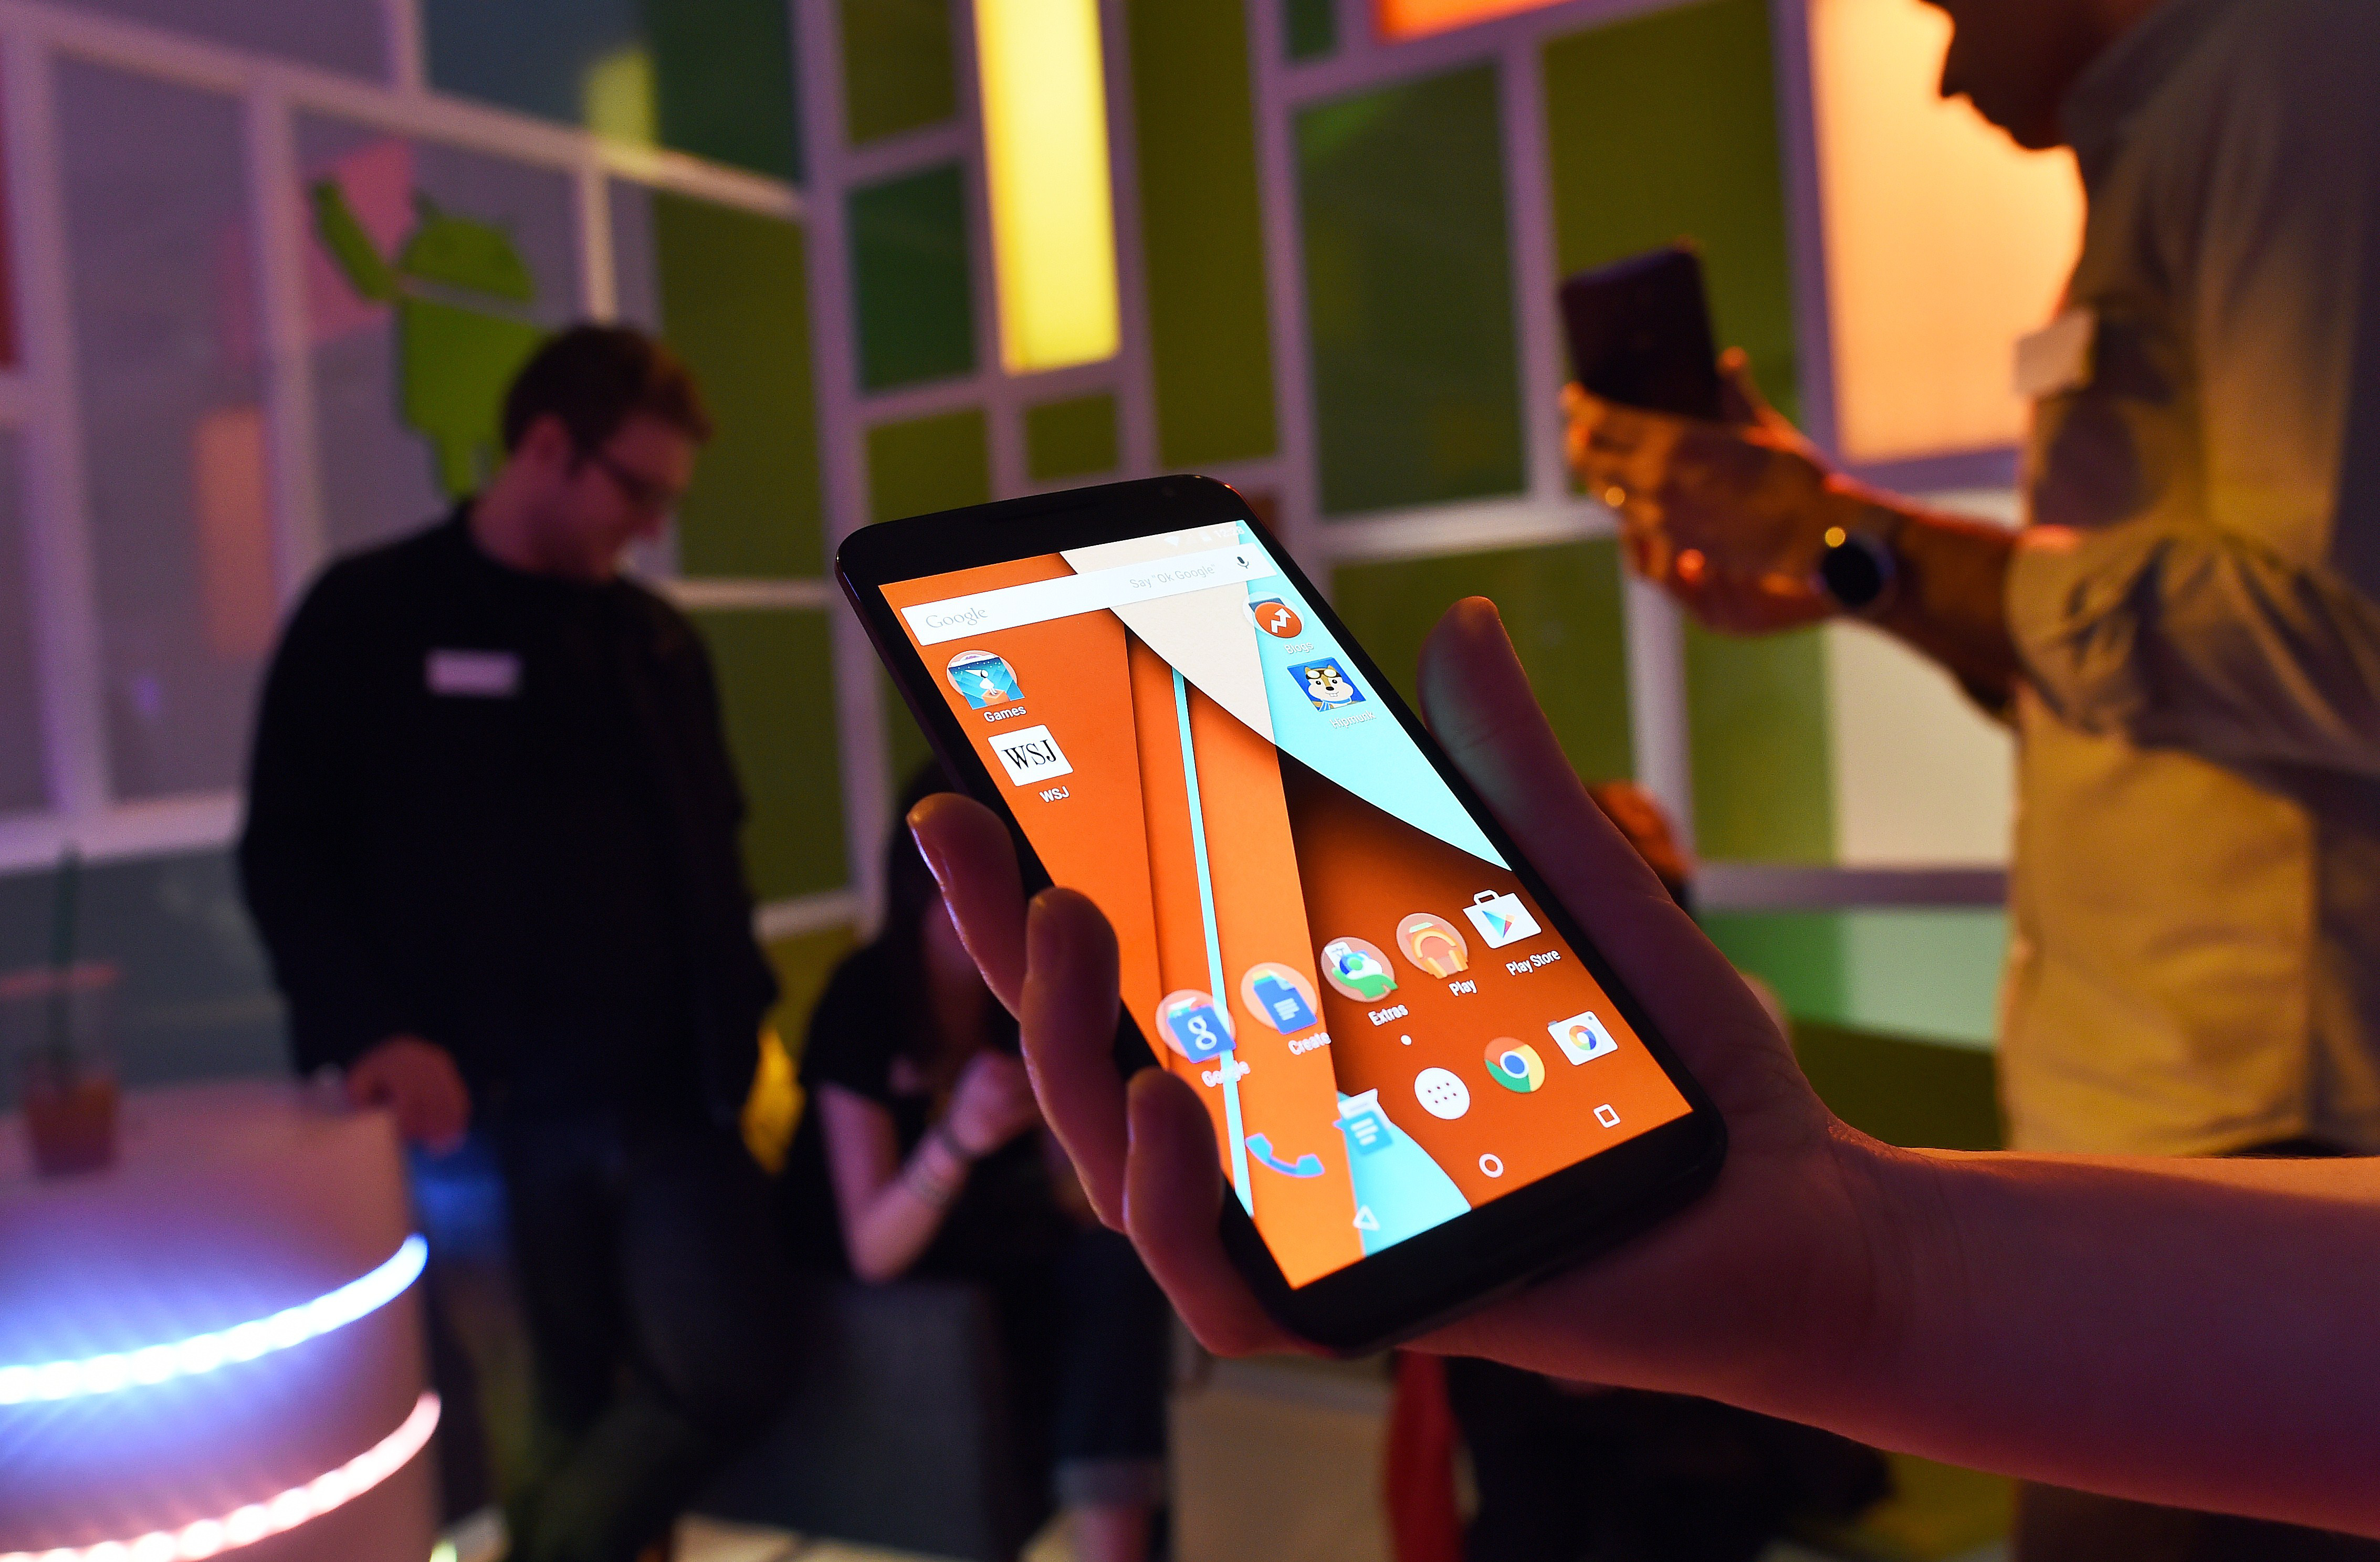 Journalists take a look at Google's newest smartphone nexus 6 during a media preview in New York on October 29, 2014.